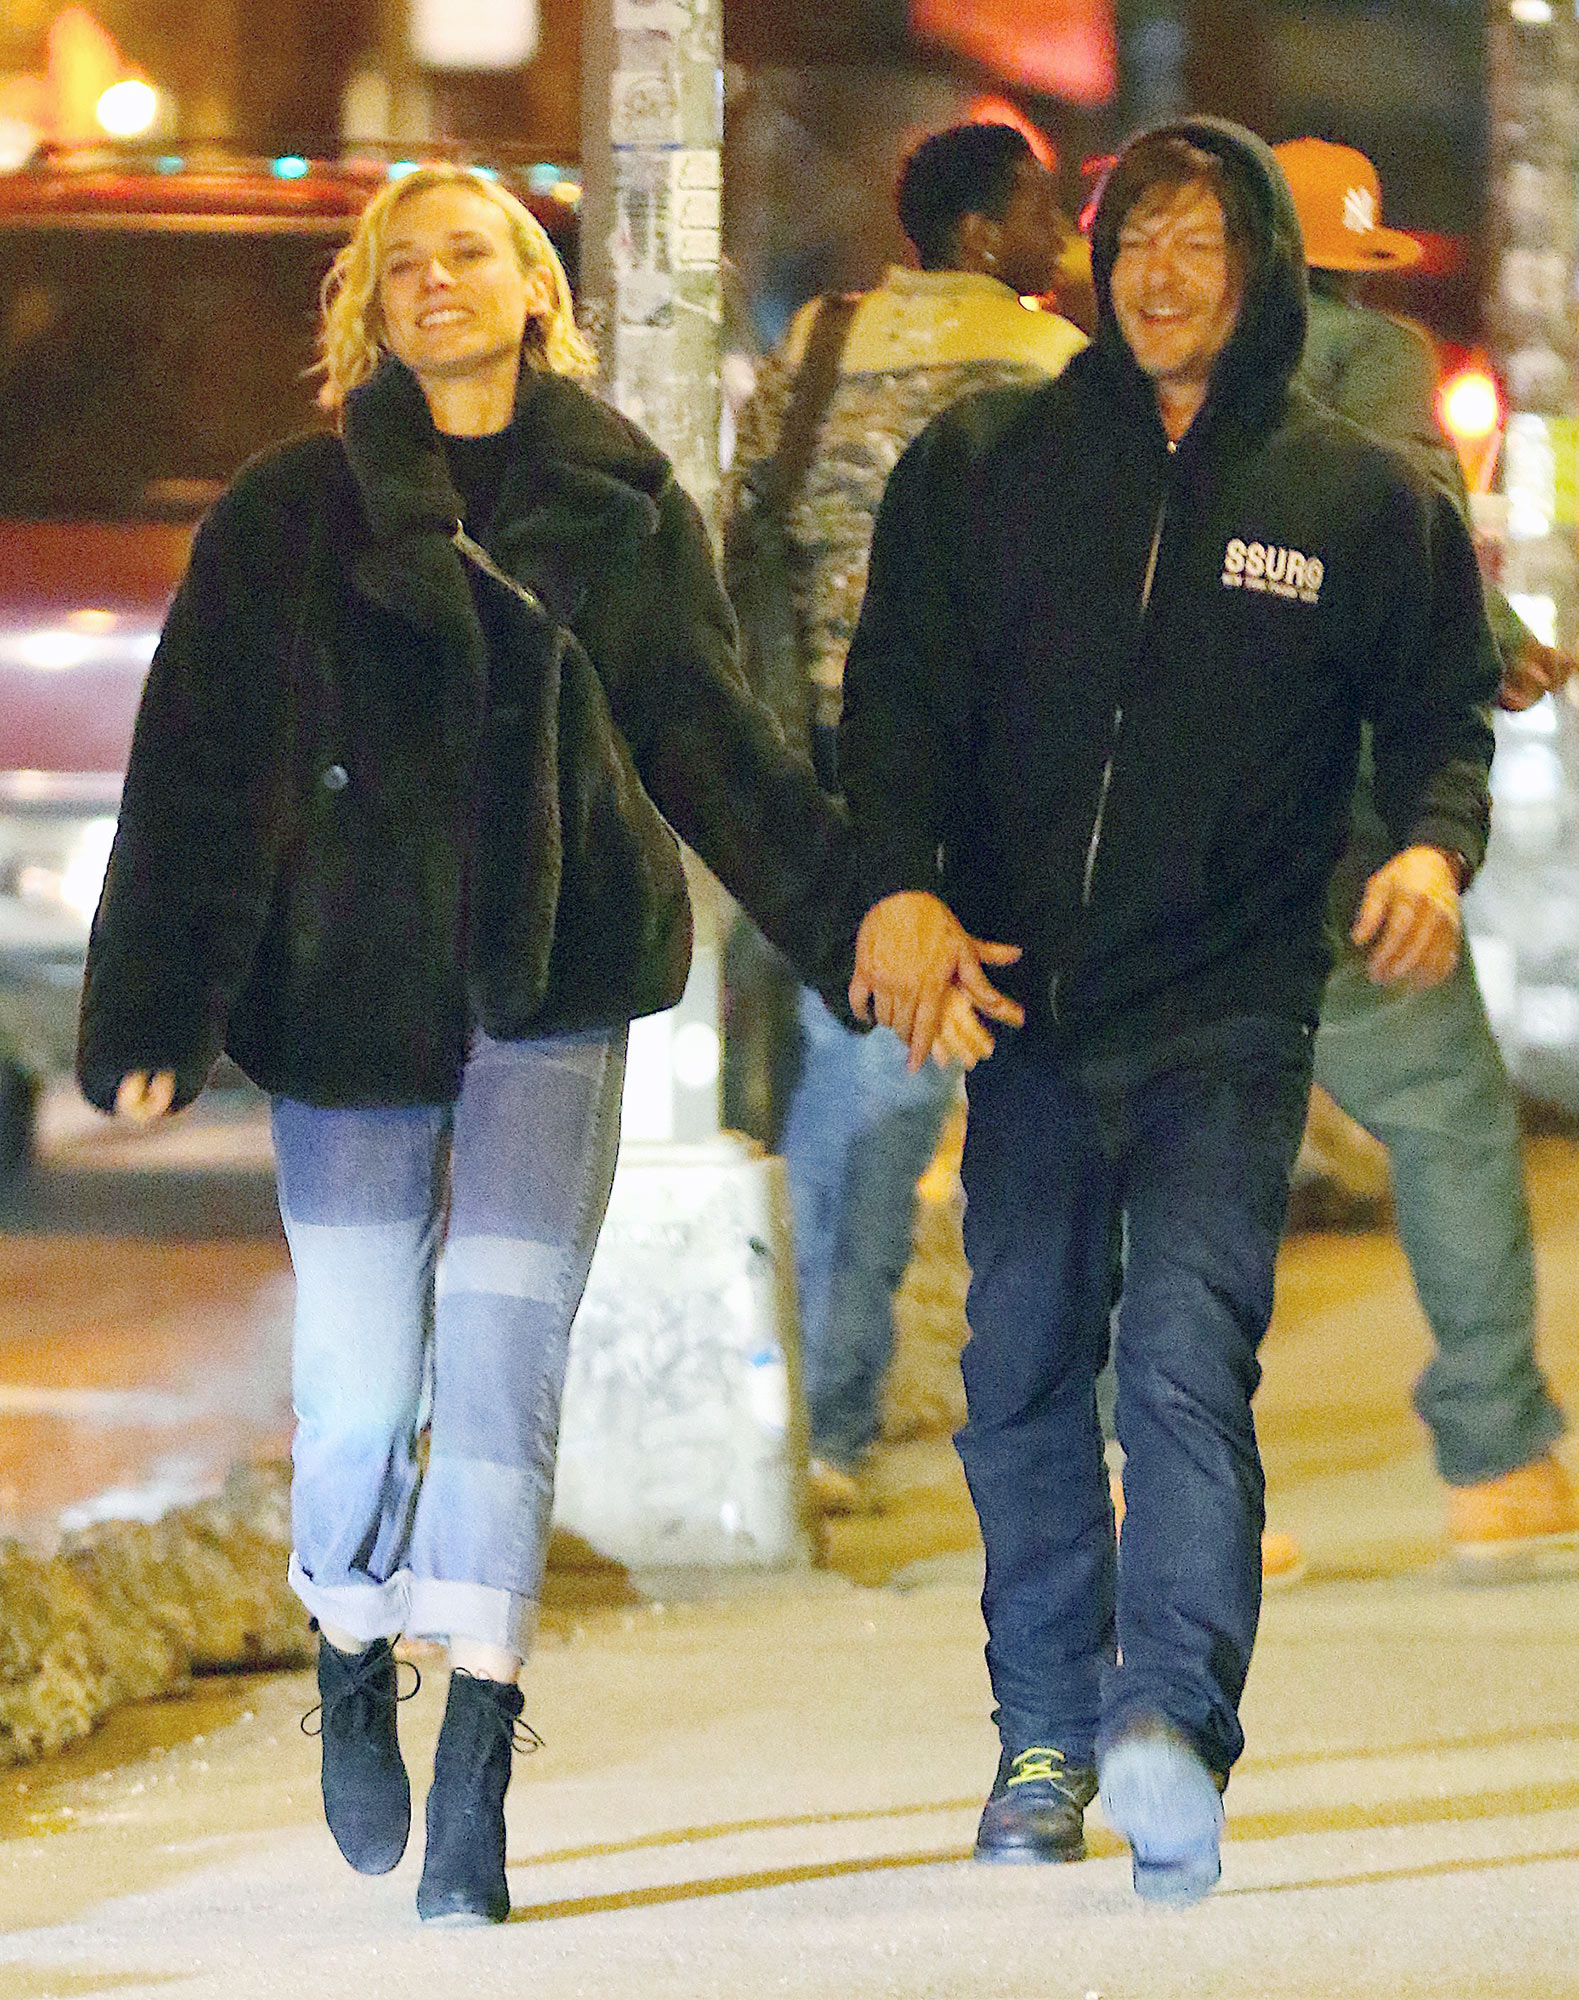 PREMIUM EXCLUSIVE: Diane Kruger and Norman Reedus Confirm Relationship with Late Night PDA in New York City